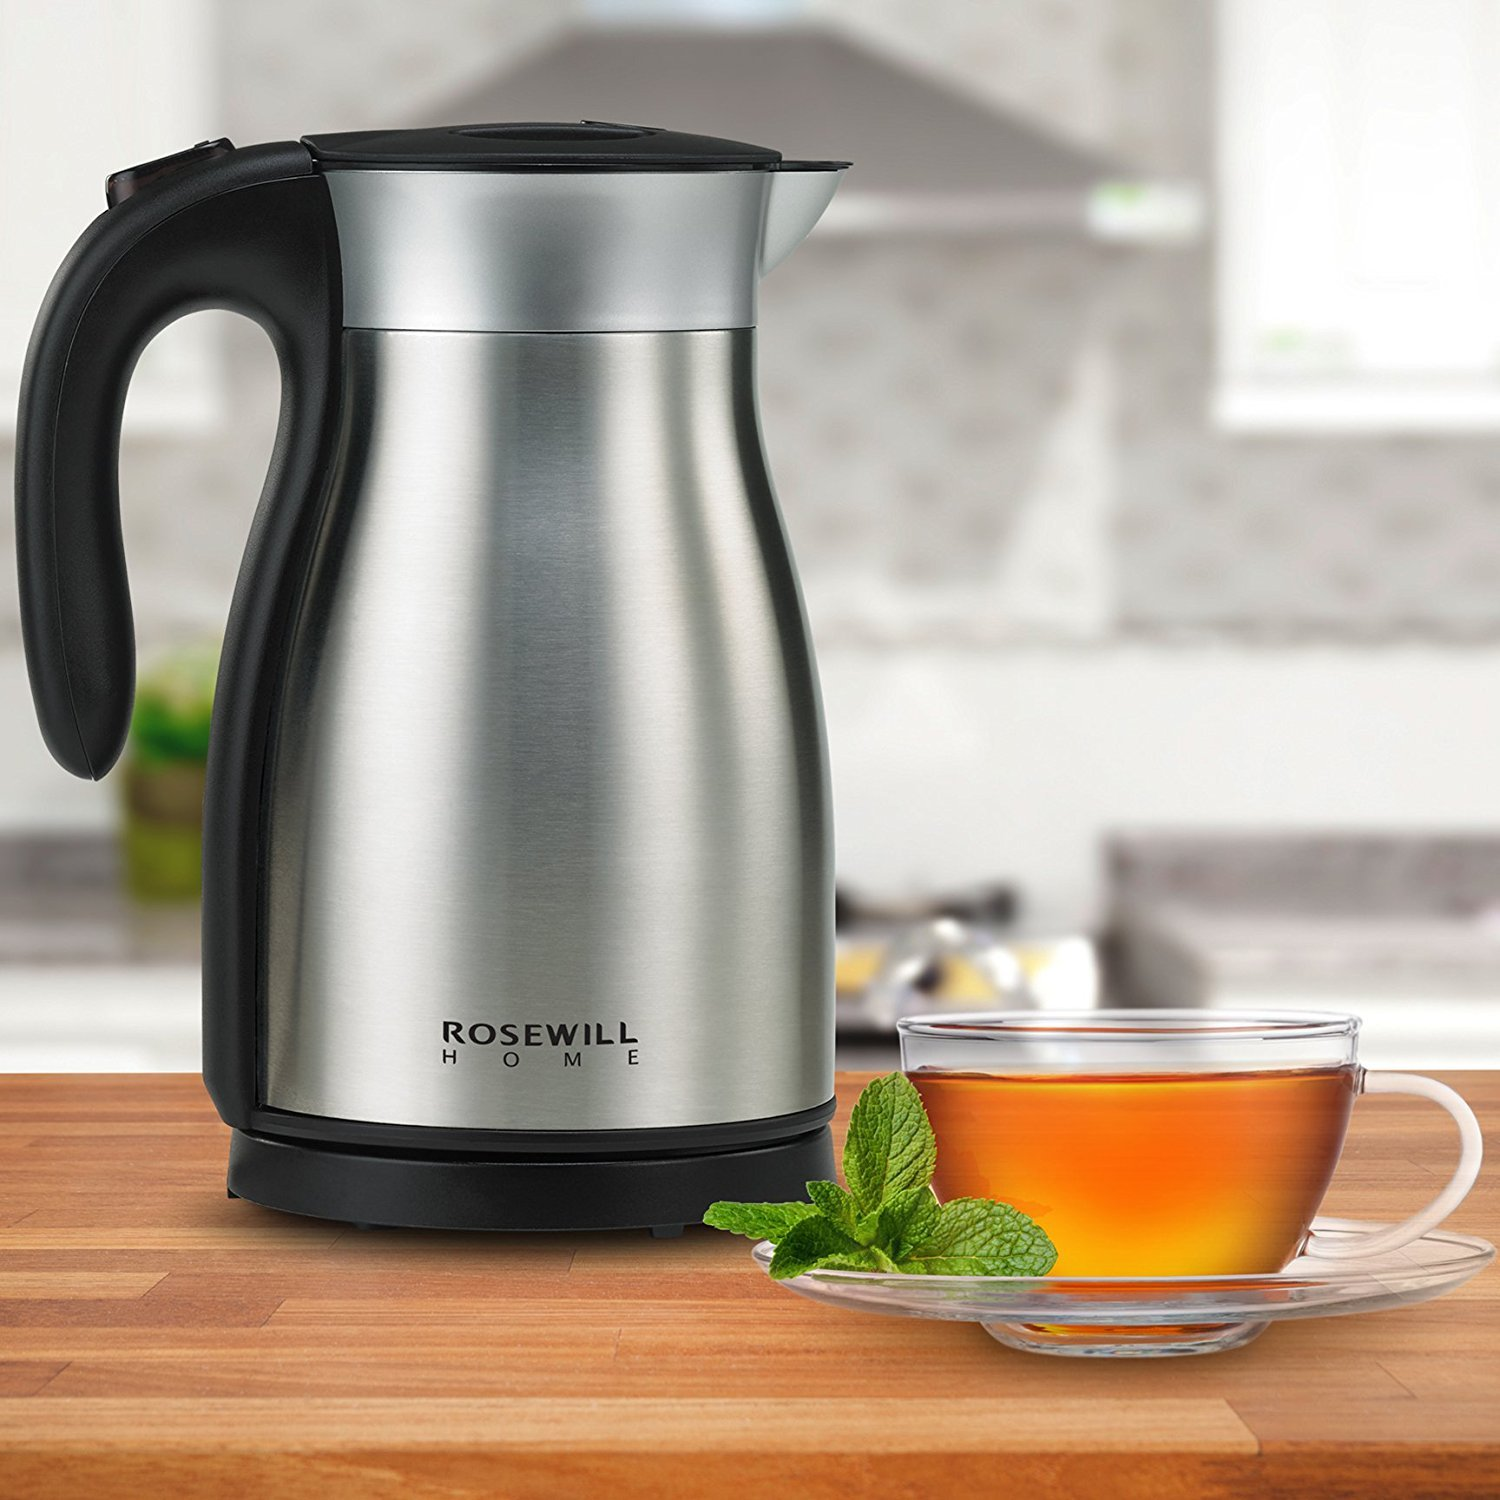 Rosewill Electric Kettle Stainless Steel Double Wall Vacuum Insulated, Keep Hot Thermal Pot, 1.7 L, 1500W, RHKT-17001